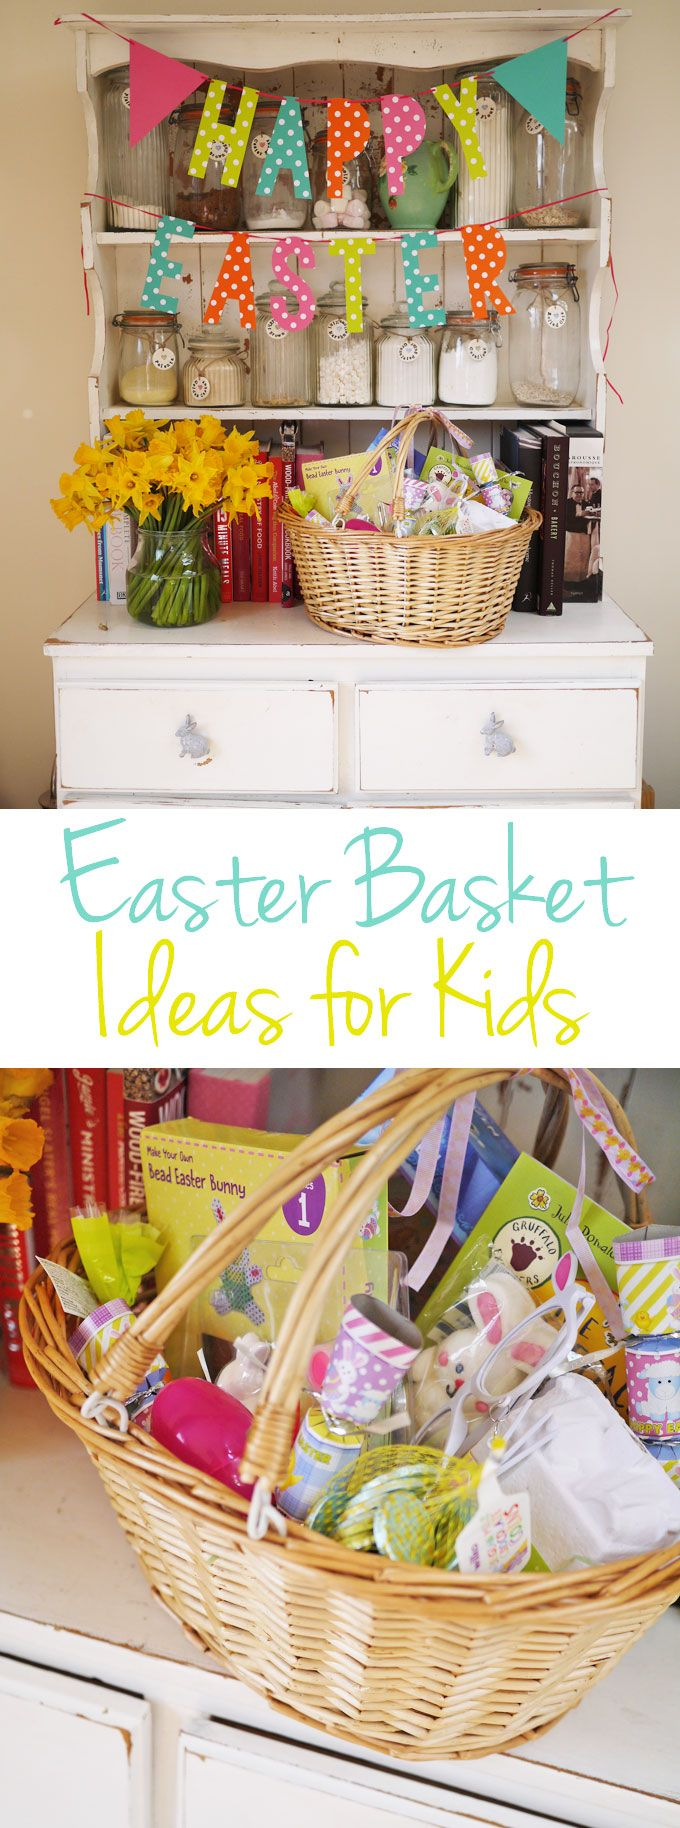 Easter Basket Ideas for Kids - Tips and advice for what to put into your Easter baskets to make something a little different for your children to celebrate the Easter holidays!   http://www.tamingtwins.com